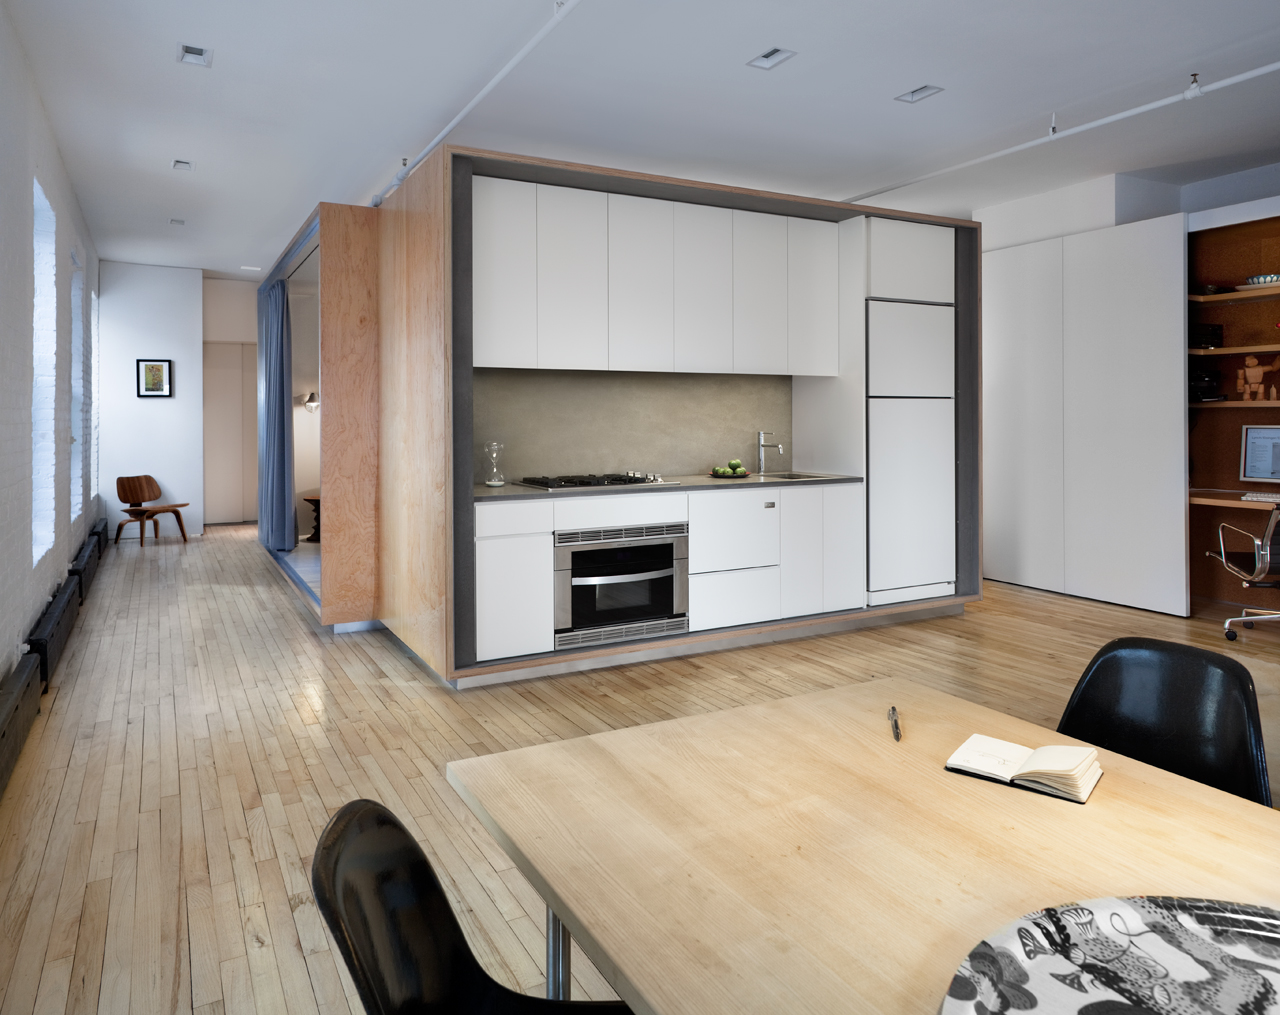 Loft Has Clever Privacy Ideas For Small Spaces Design Milk